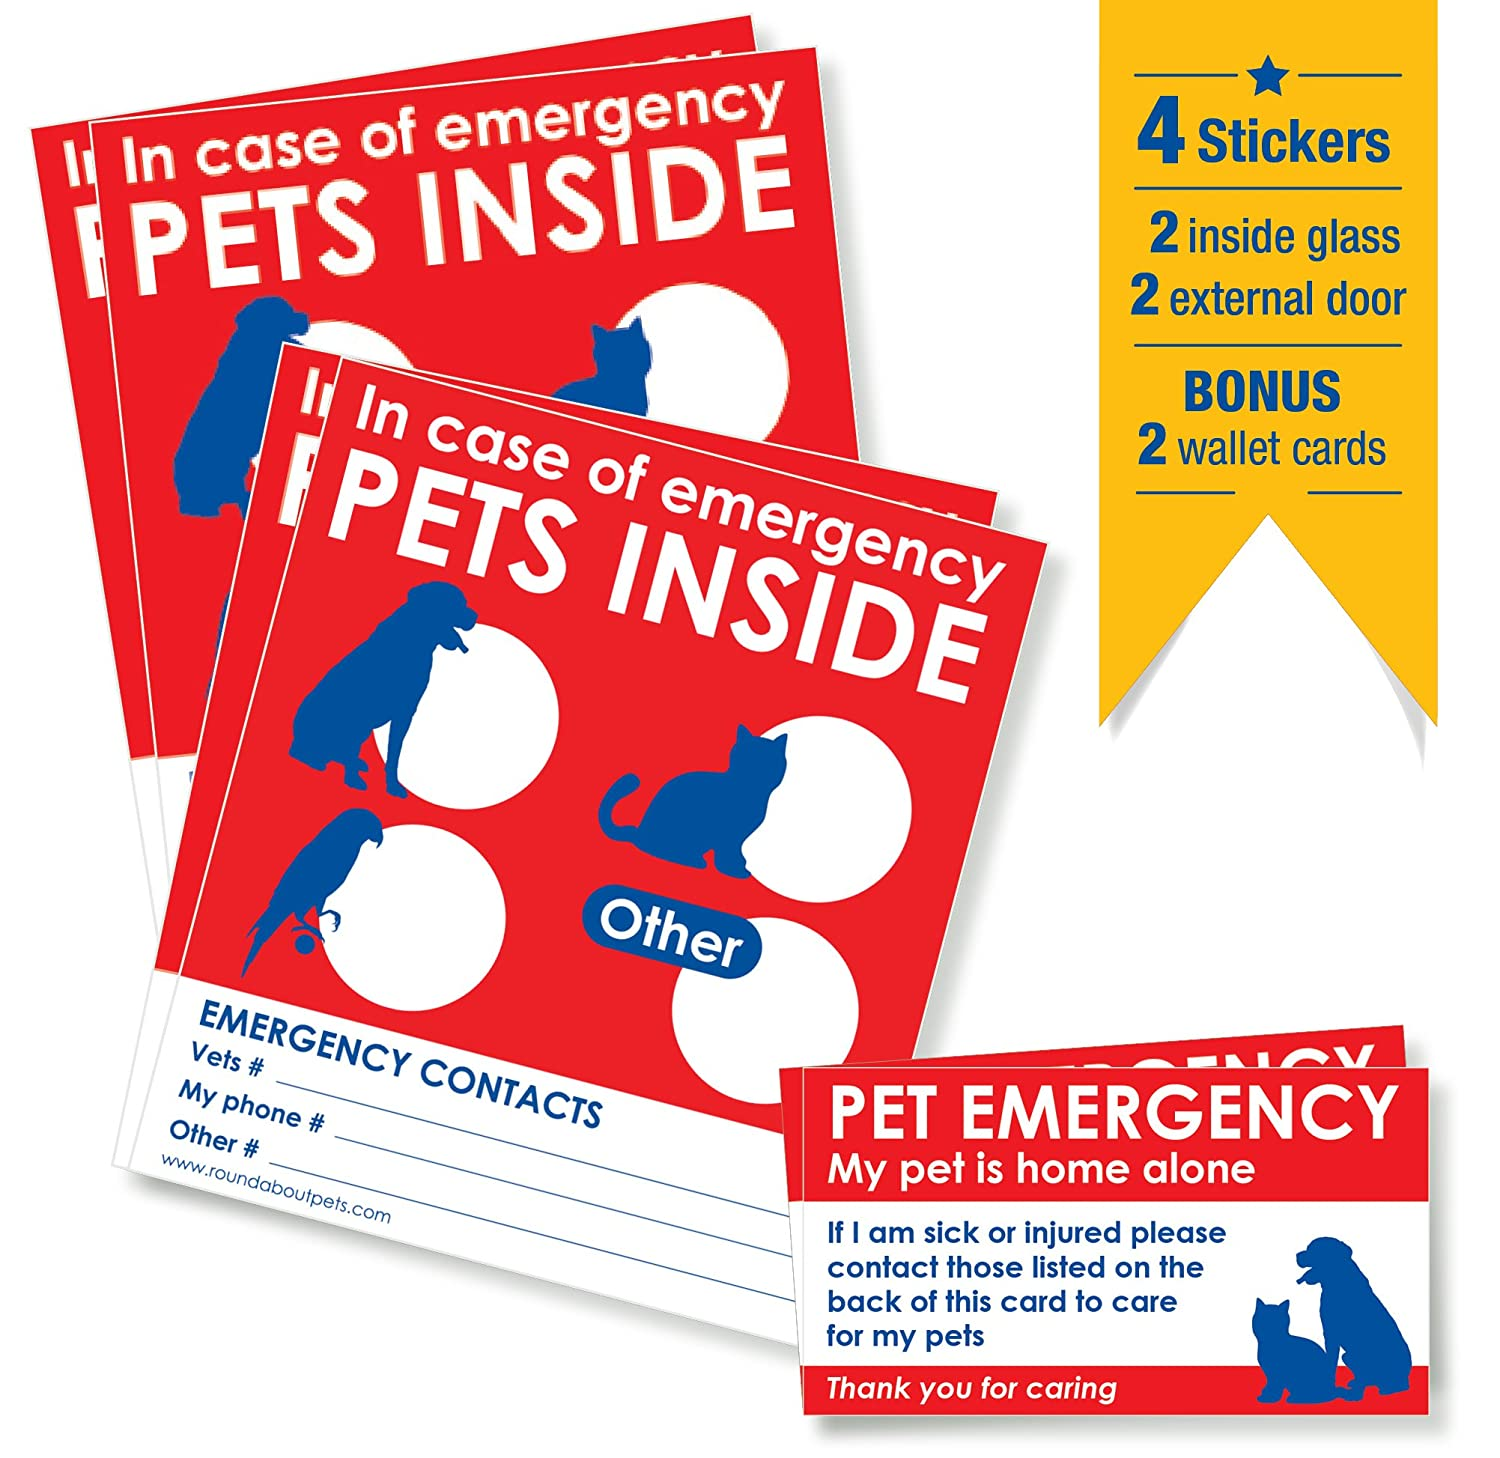 Awe Inspiring Pets Rescue Stickers X 4 With Bonus Pet Home Alone Wallet Beutiful Home Inspiration Aditmahrainfo